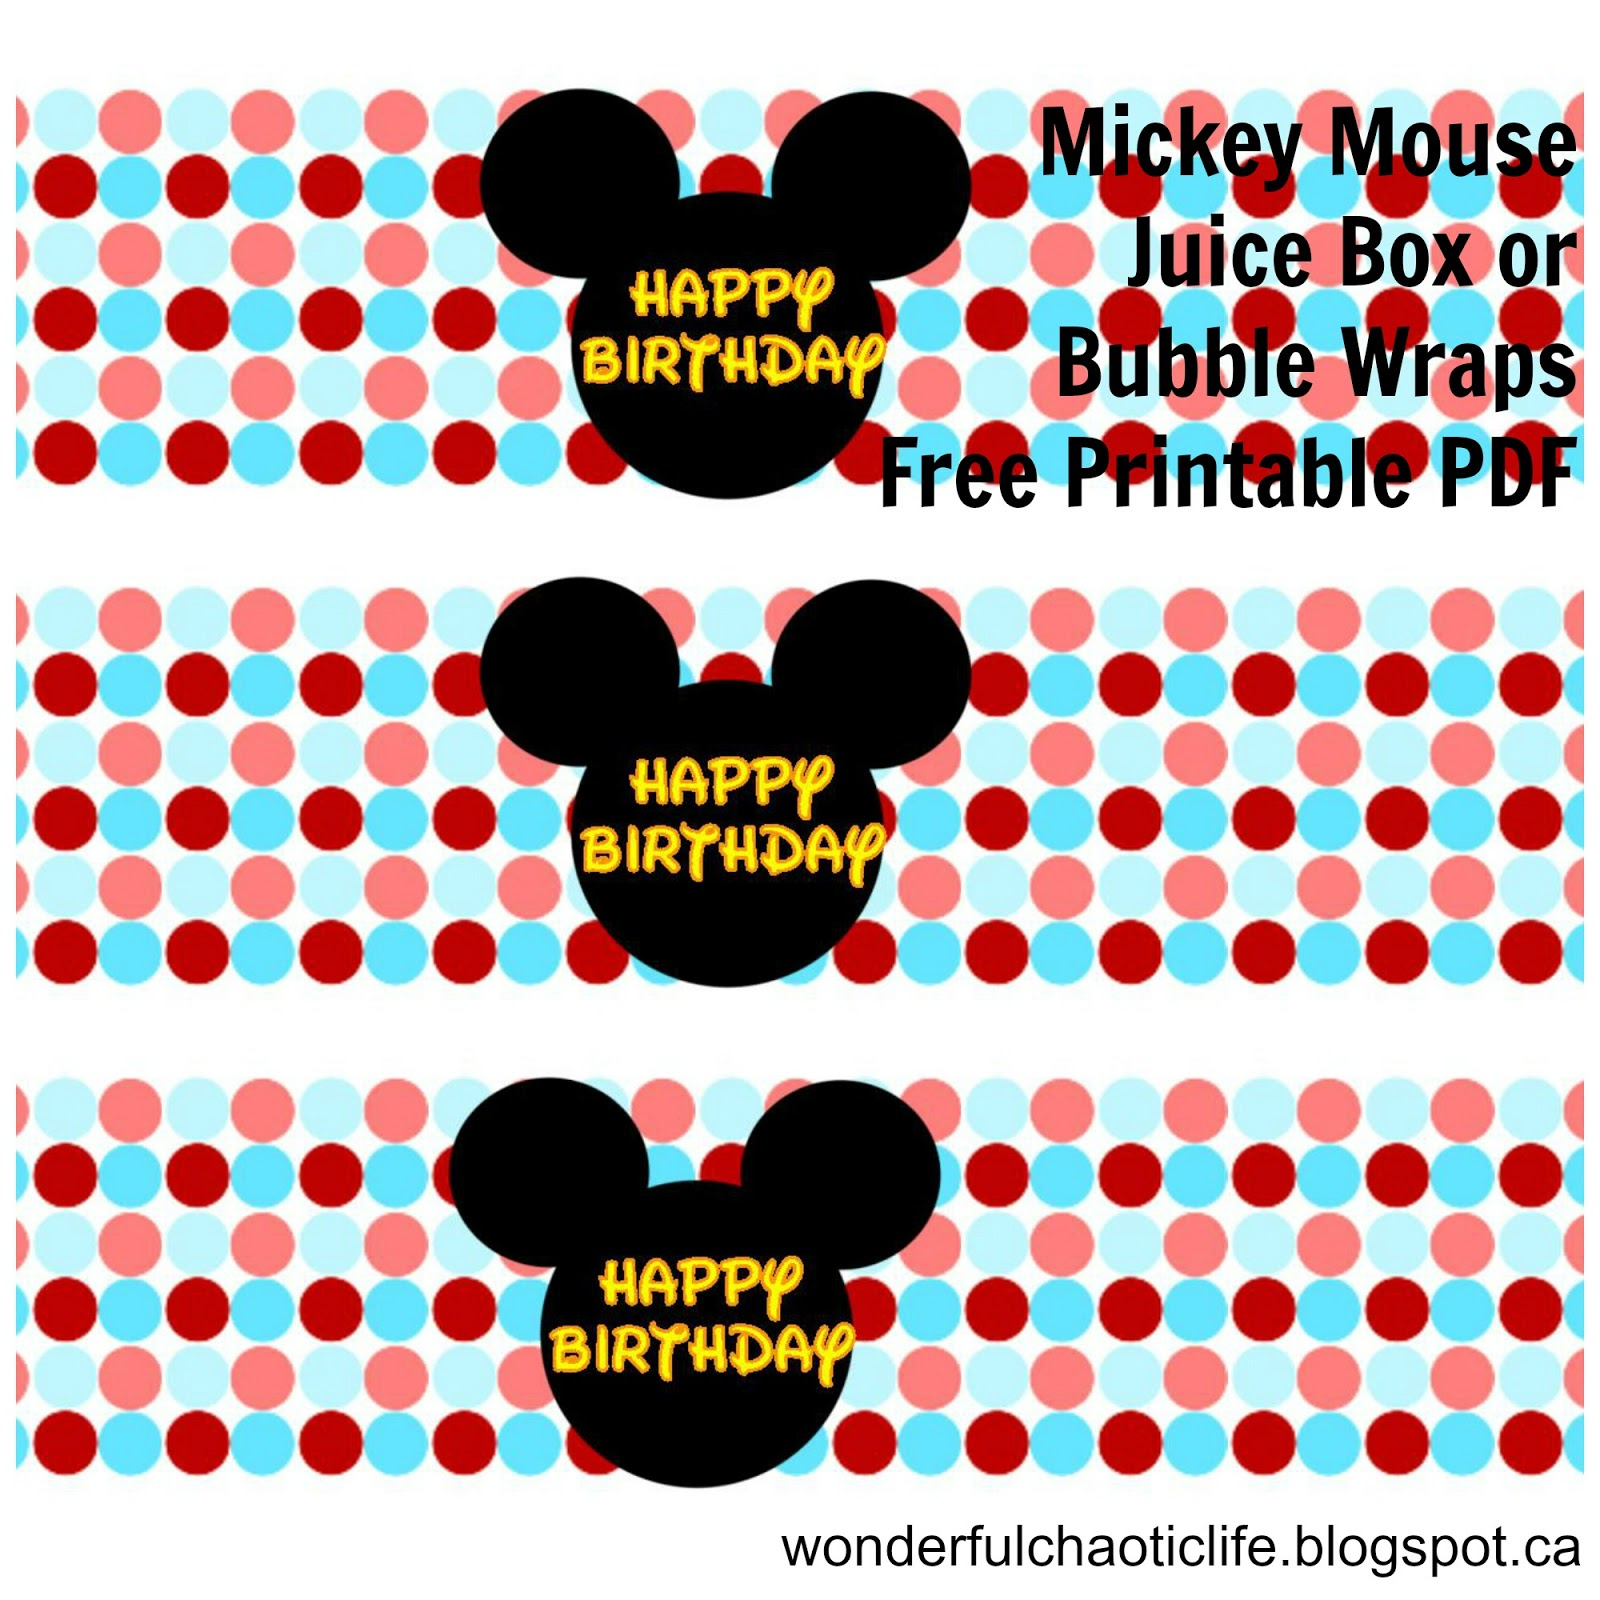 It S My Wonderful Chaotic Life Mickey Mouse Birthday